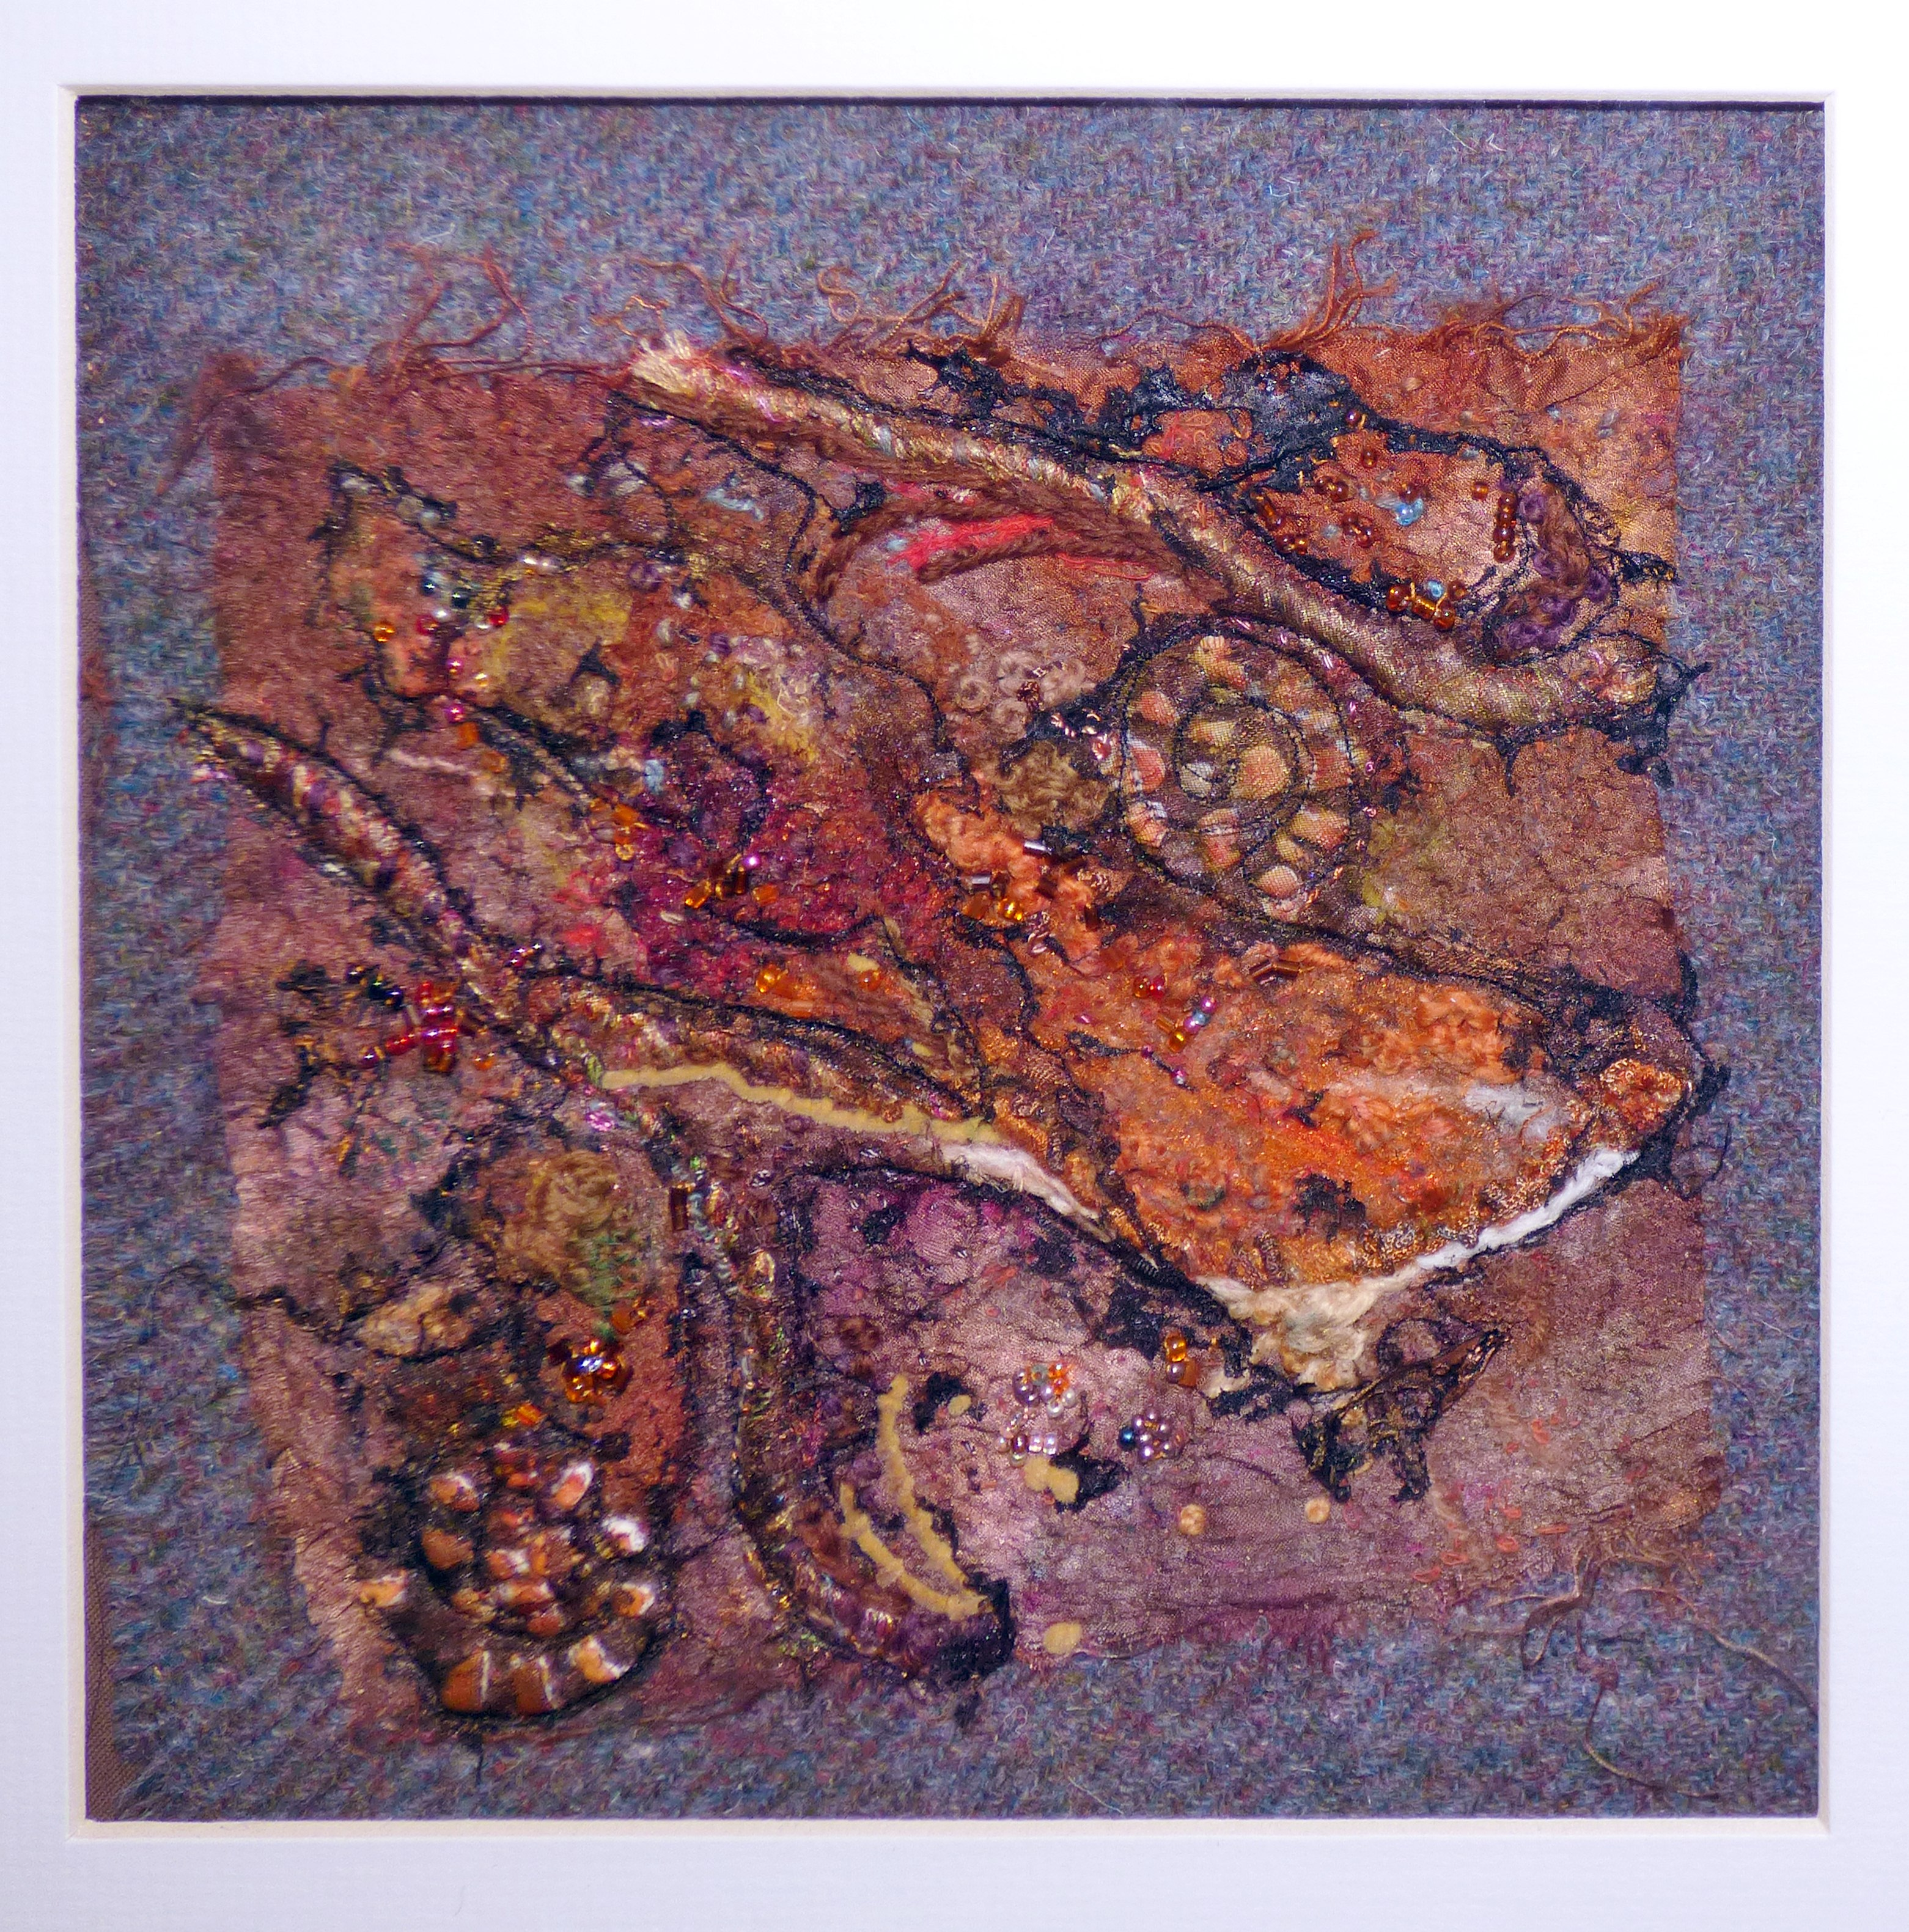 SOIL PATTERNS by Janet Vance, needle felting and hand stitching